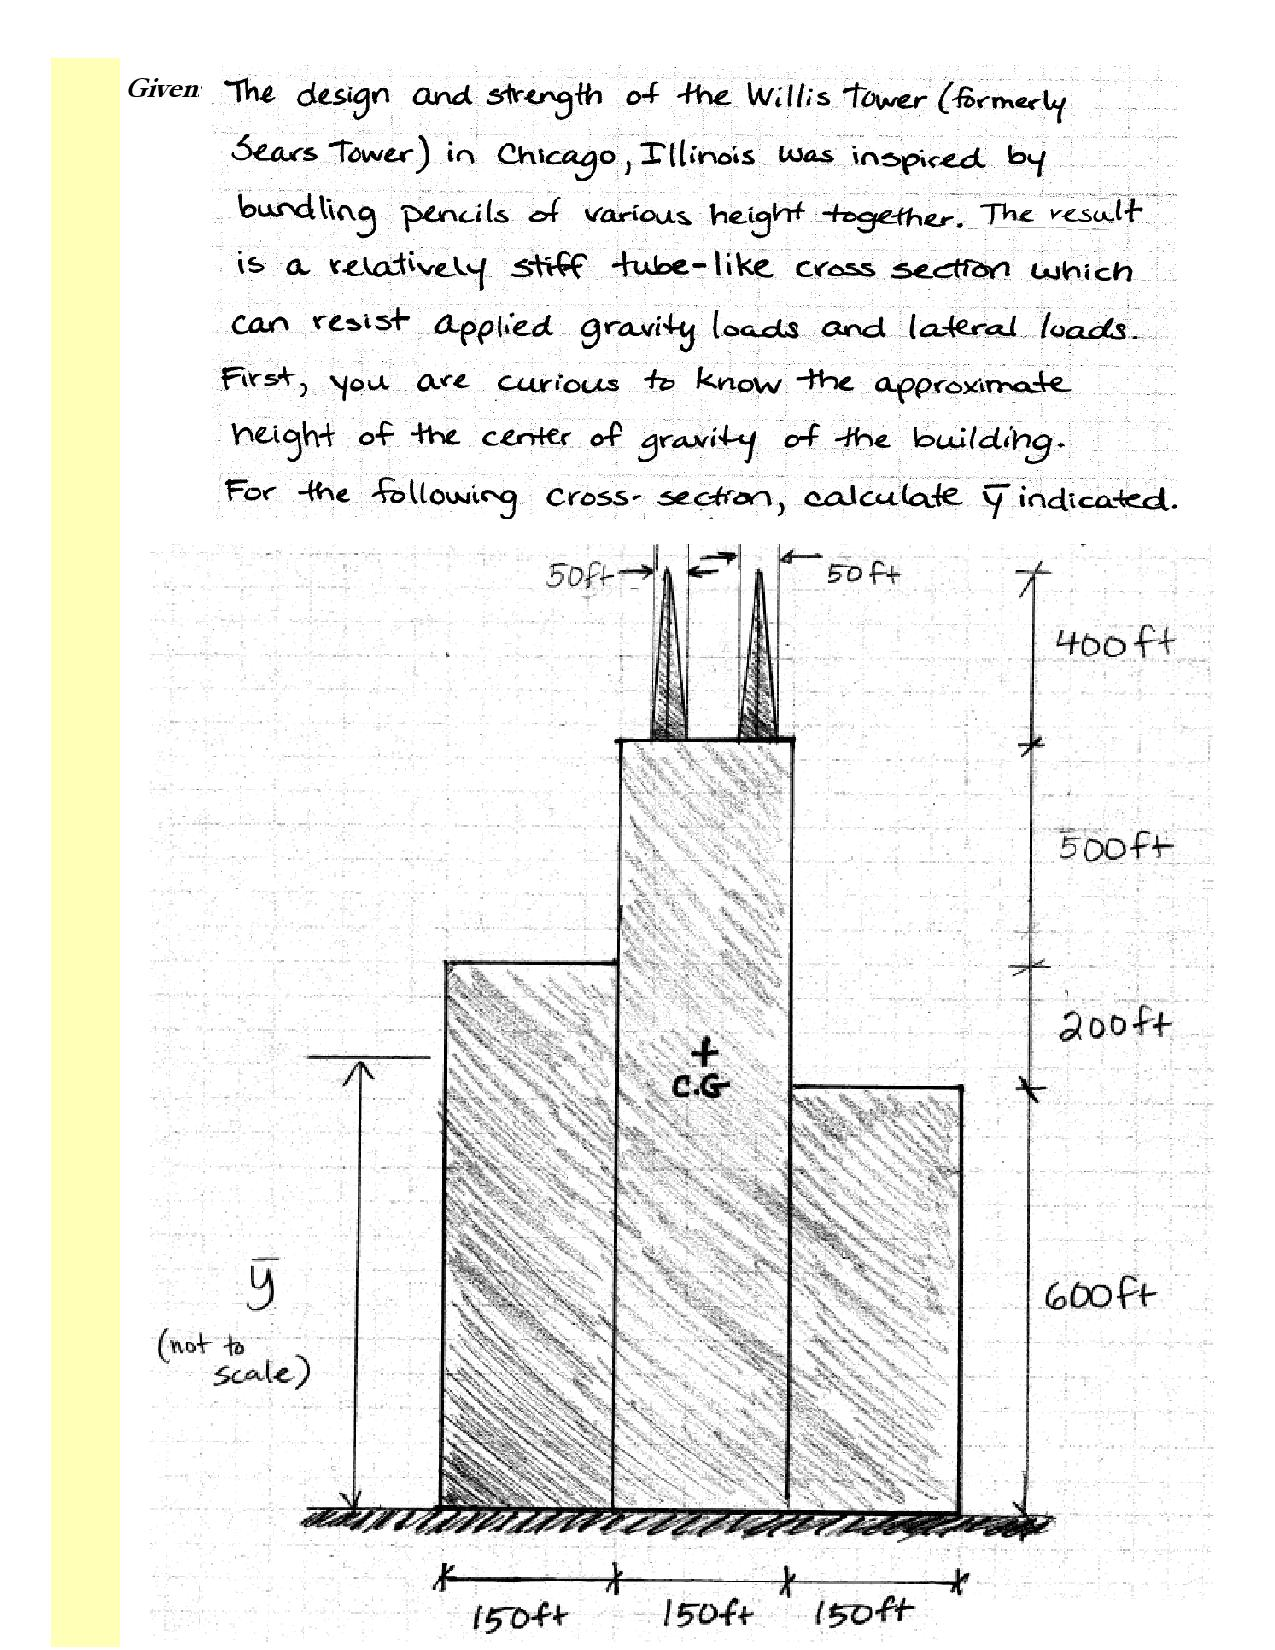 Solved: Given: The Design And Strength Of The Willis Tower